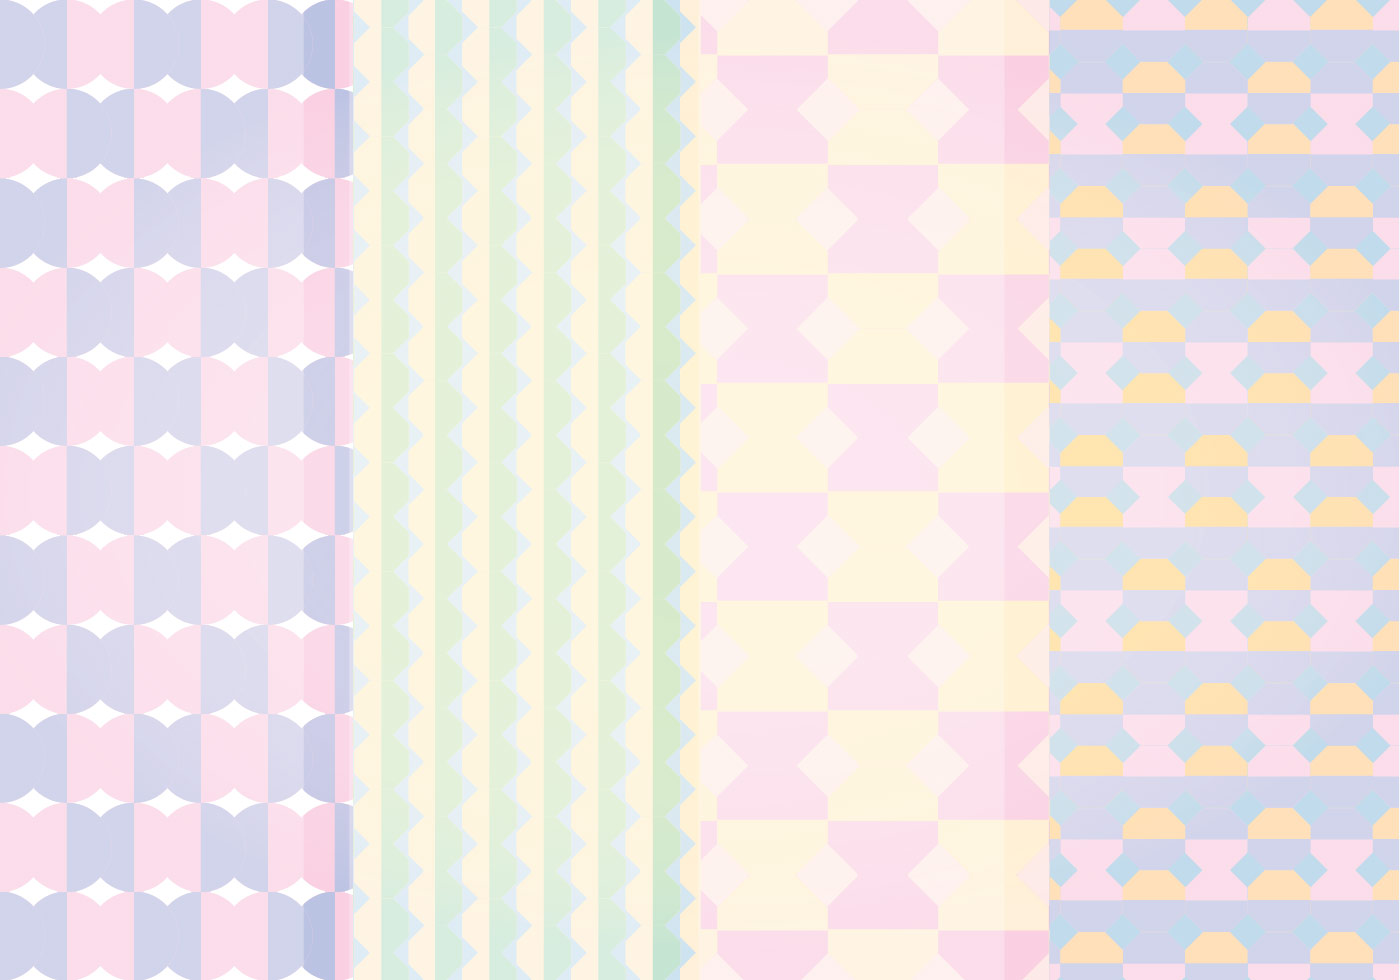 Vector Pastel Geometric Patterns Download Free Vector